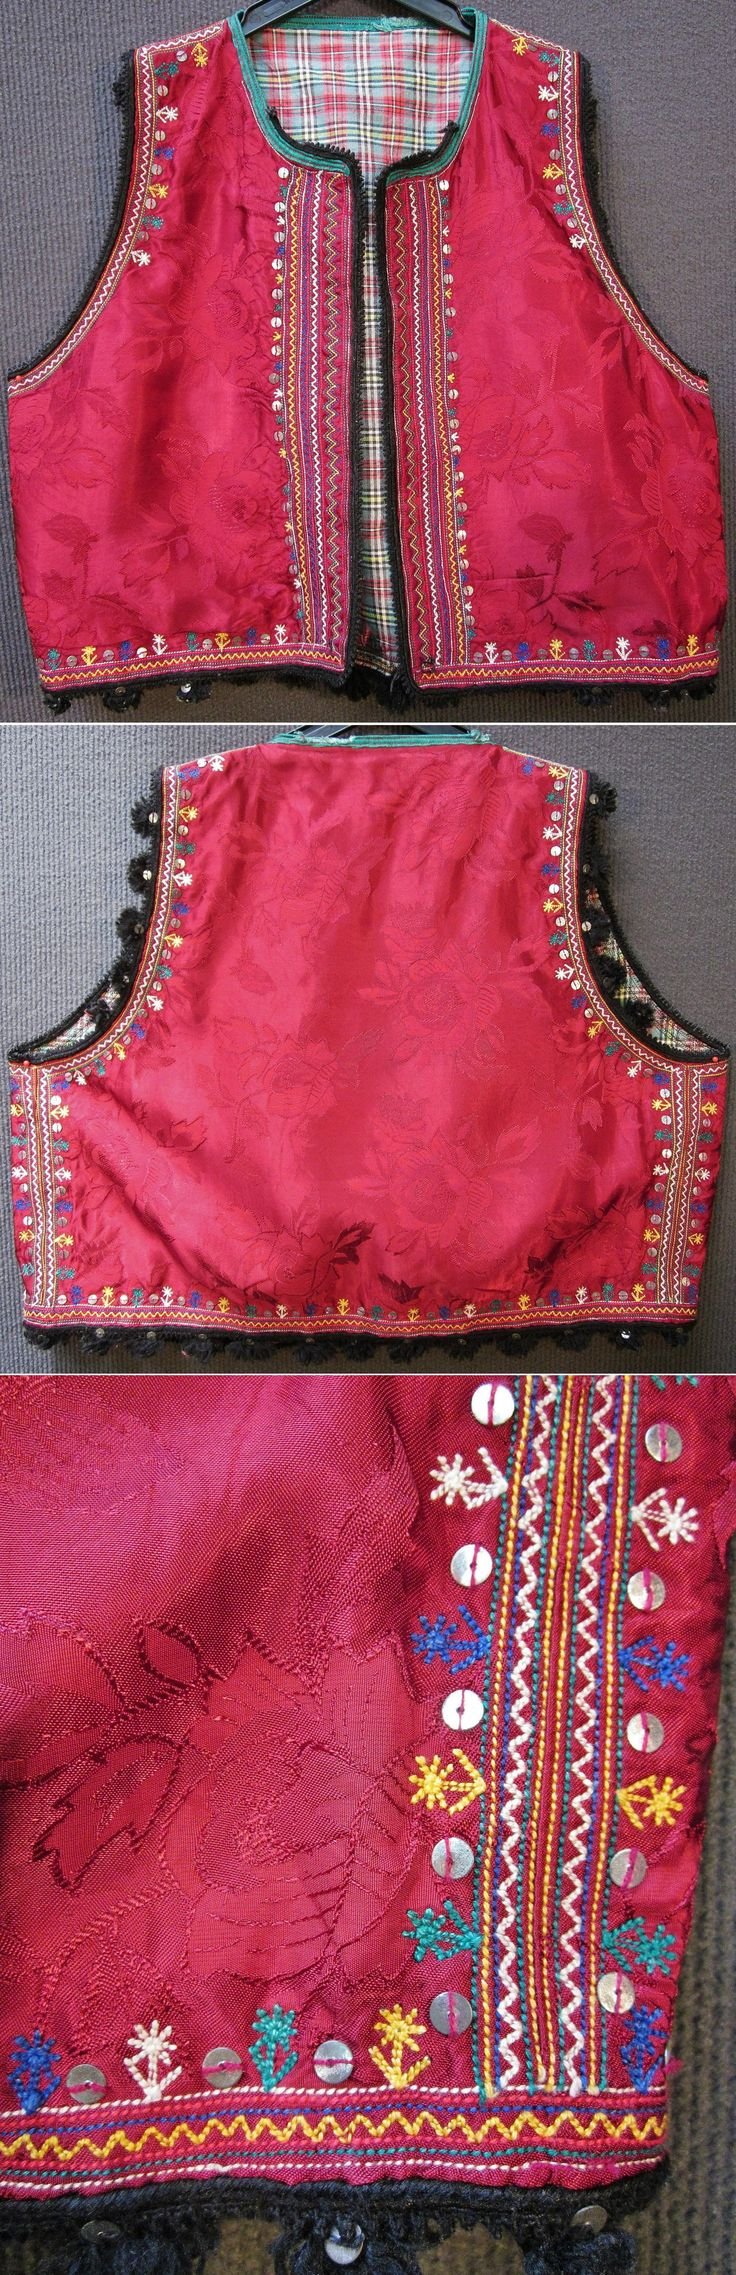 Woman's 'yelek' (bodice). From the Ruen district (in the northern part of the Burgas province, southeastern Bulgaria). Rural, ca. 1950-1975. Part of the traditional festive costume. Ethnic group: Turkish Alevi. Damask weaving in mercerised cotton. Adorned with multicoloured cotton embroidery and metallic sequins. (Inv.n° yeL025 - Kavak Costume Collection - Antwerpen/Belgium).